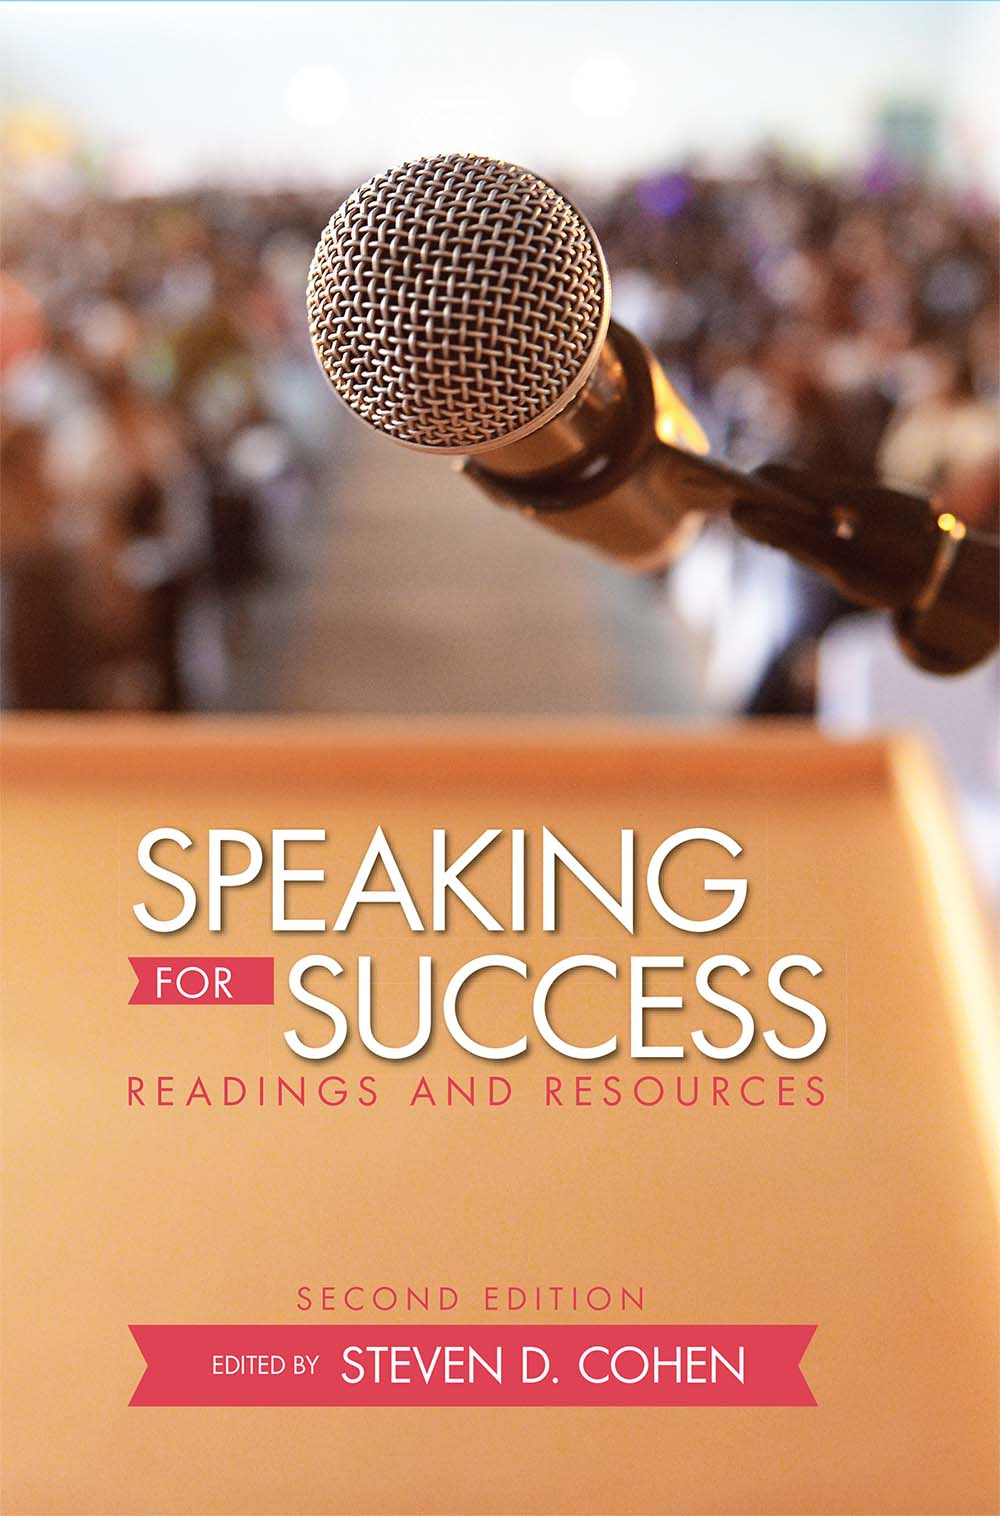 Speaking for Success: Readings and Resources